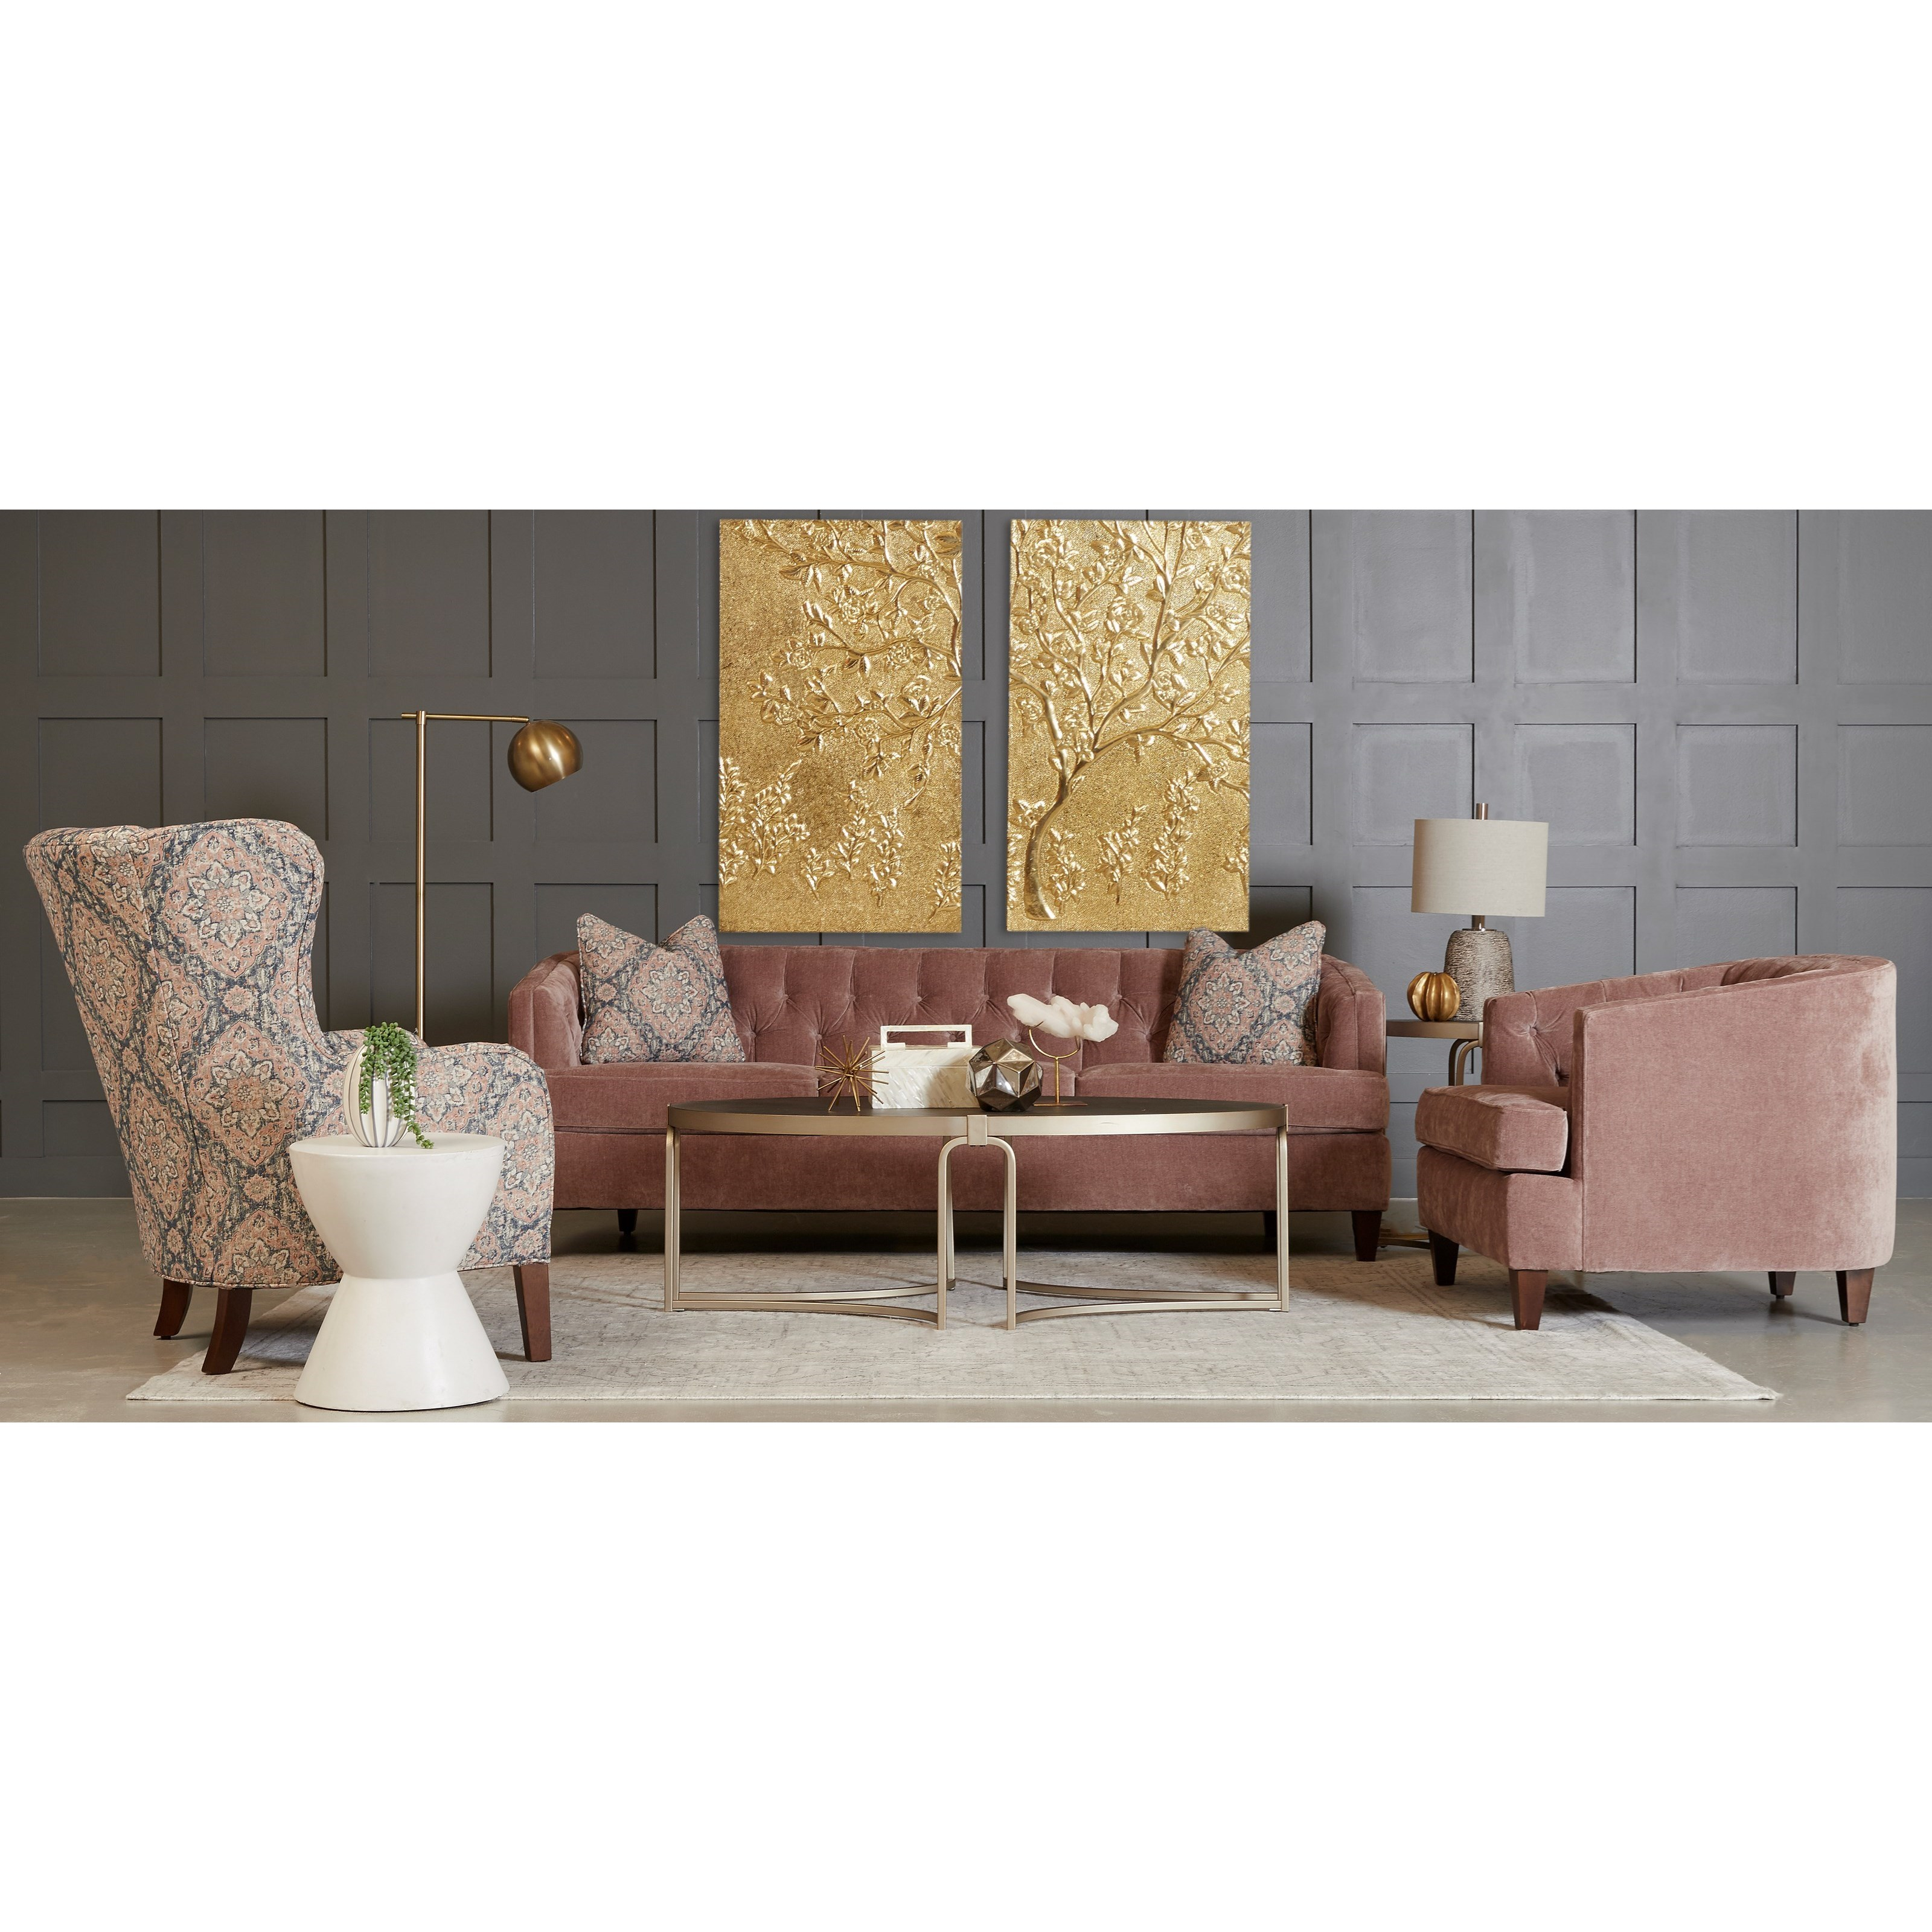 Kimbal Living Room Group by Klaussner at Johnny Janosik